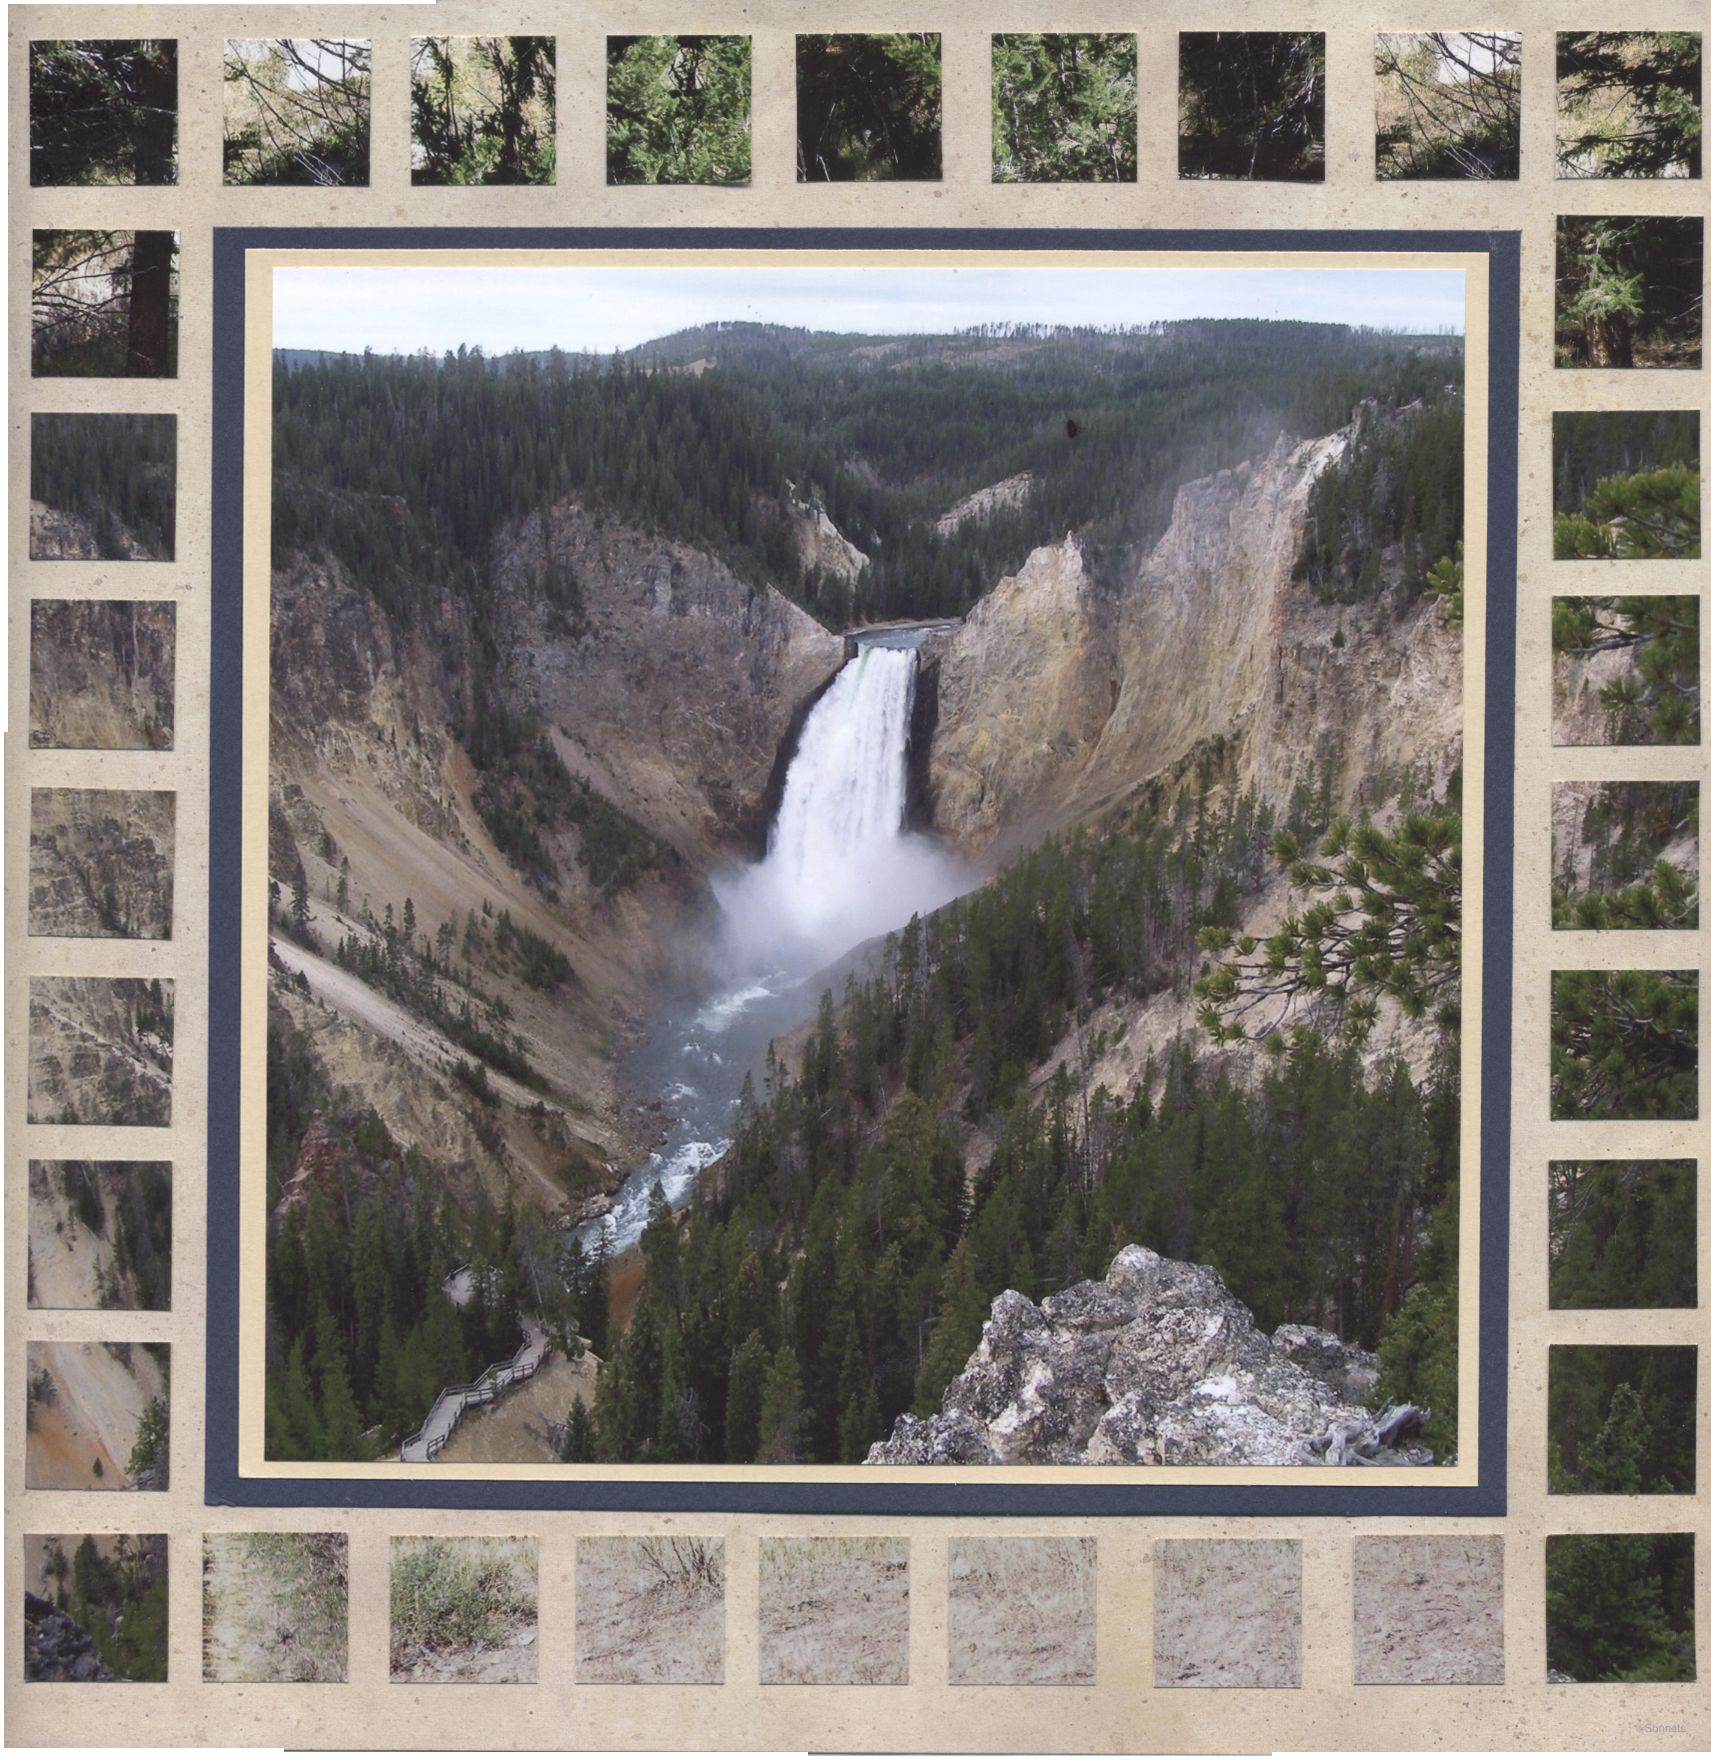 Scrapbook ideas niagara falls - Could Be Modified To Be Used For Niagara Falls Yellowstone Scrapbooking Page Ideas